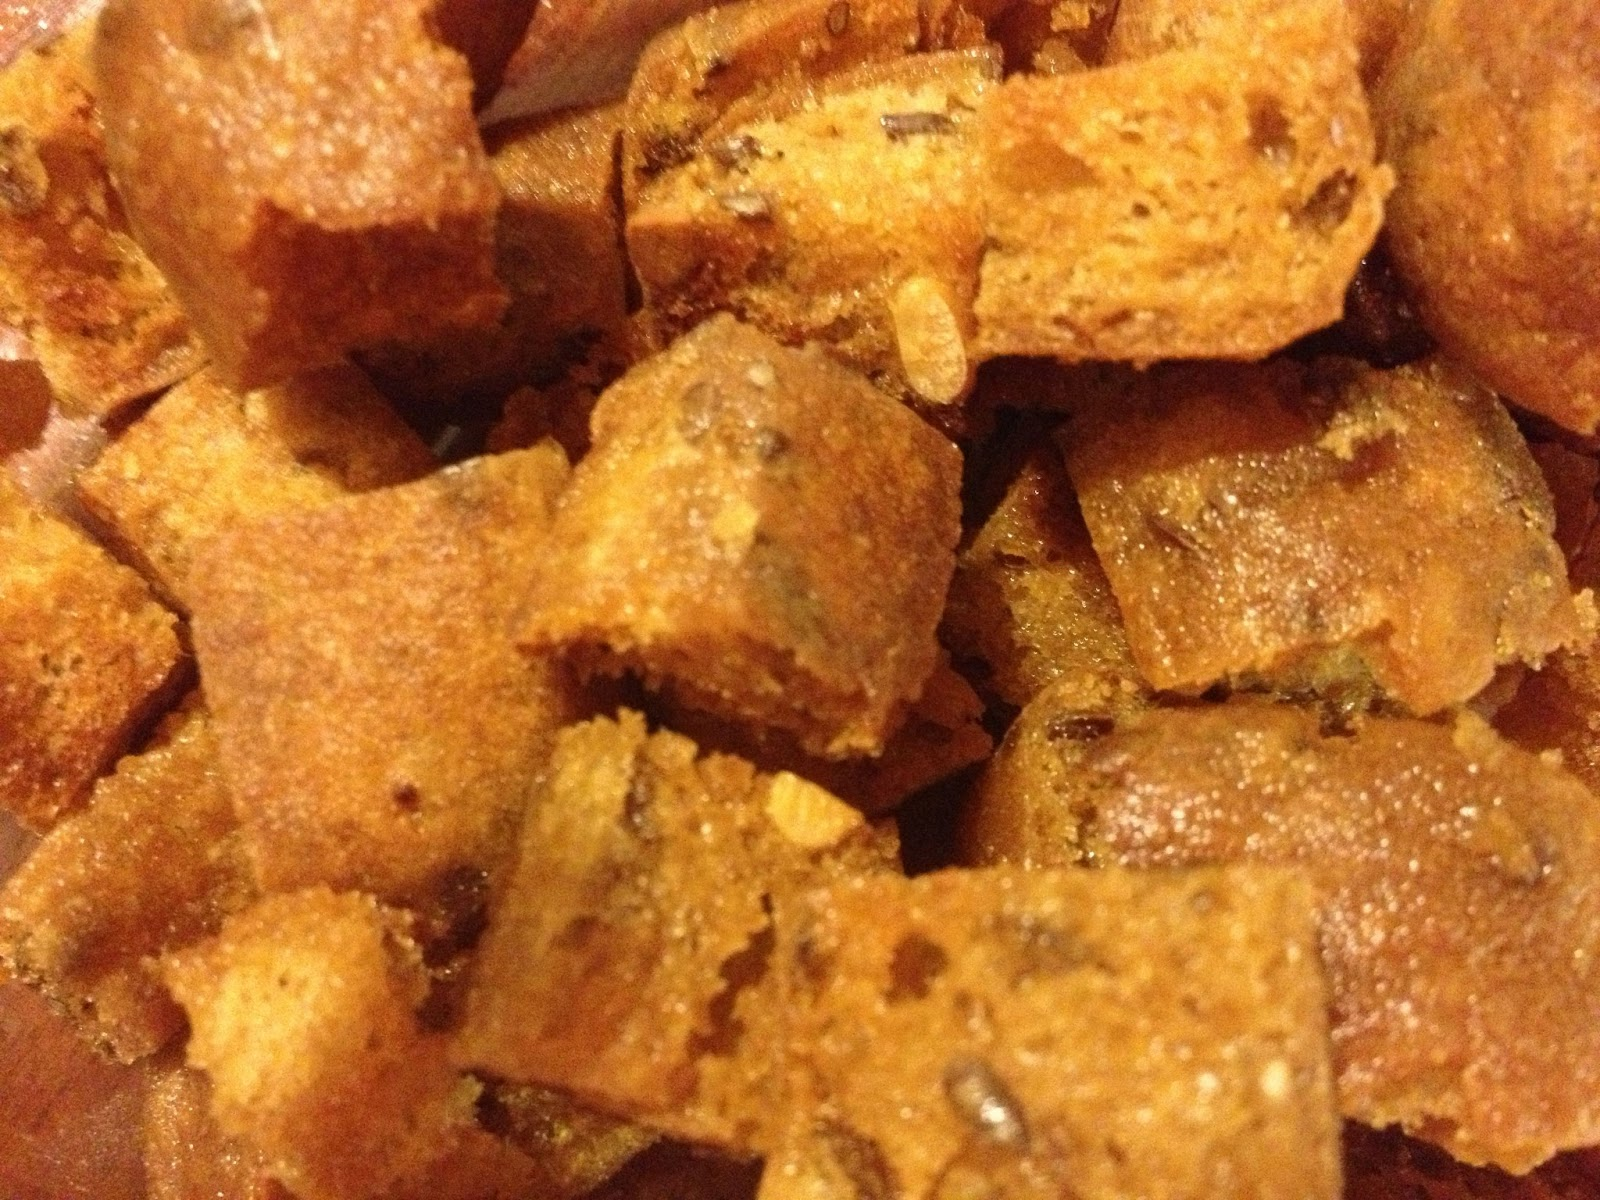 Free From G.: Gluten Free Croutons